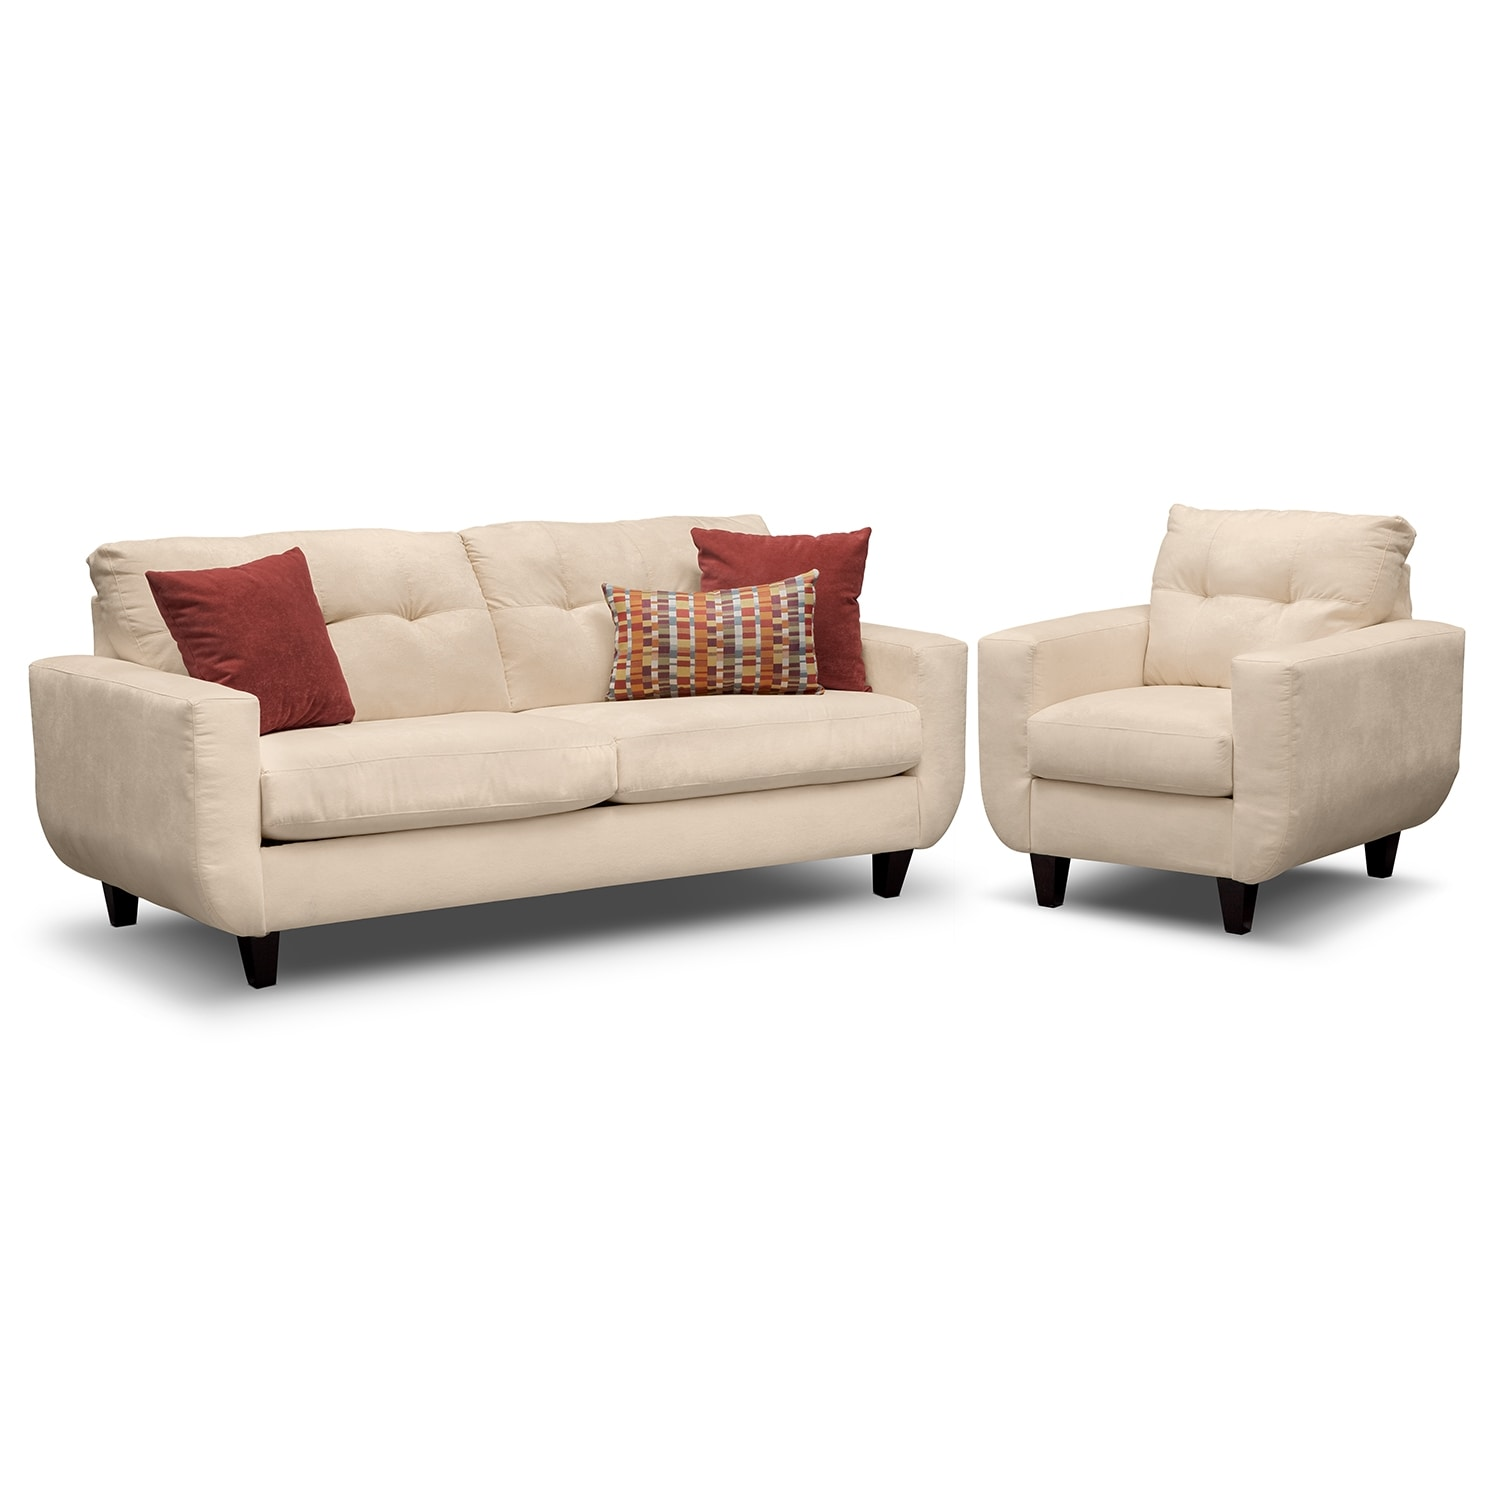 Living Room Furniture - West Village Sofa and Chair - Cream